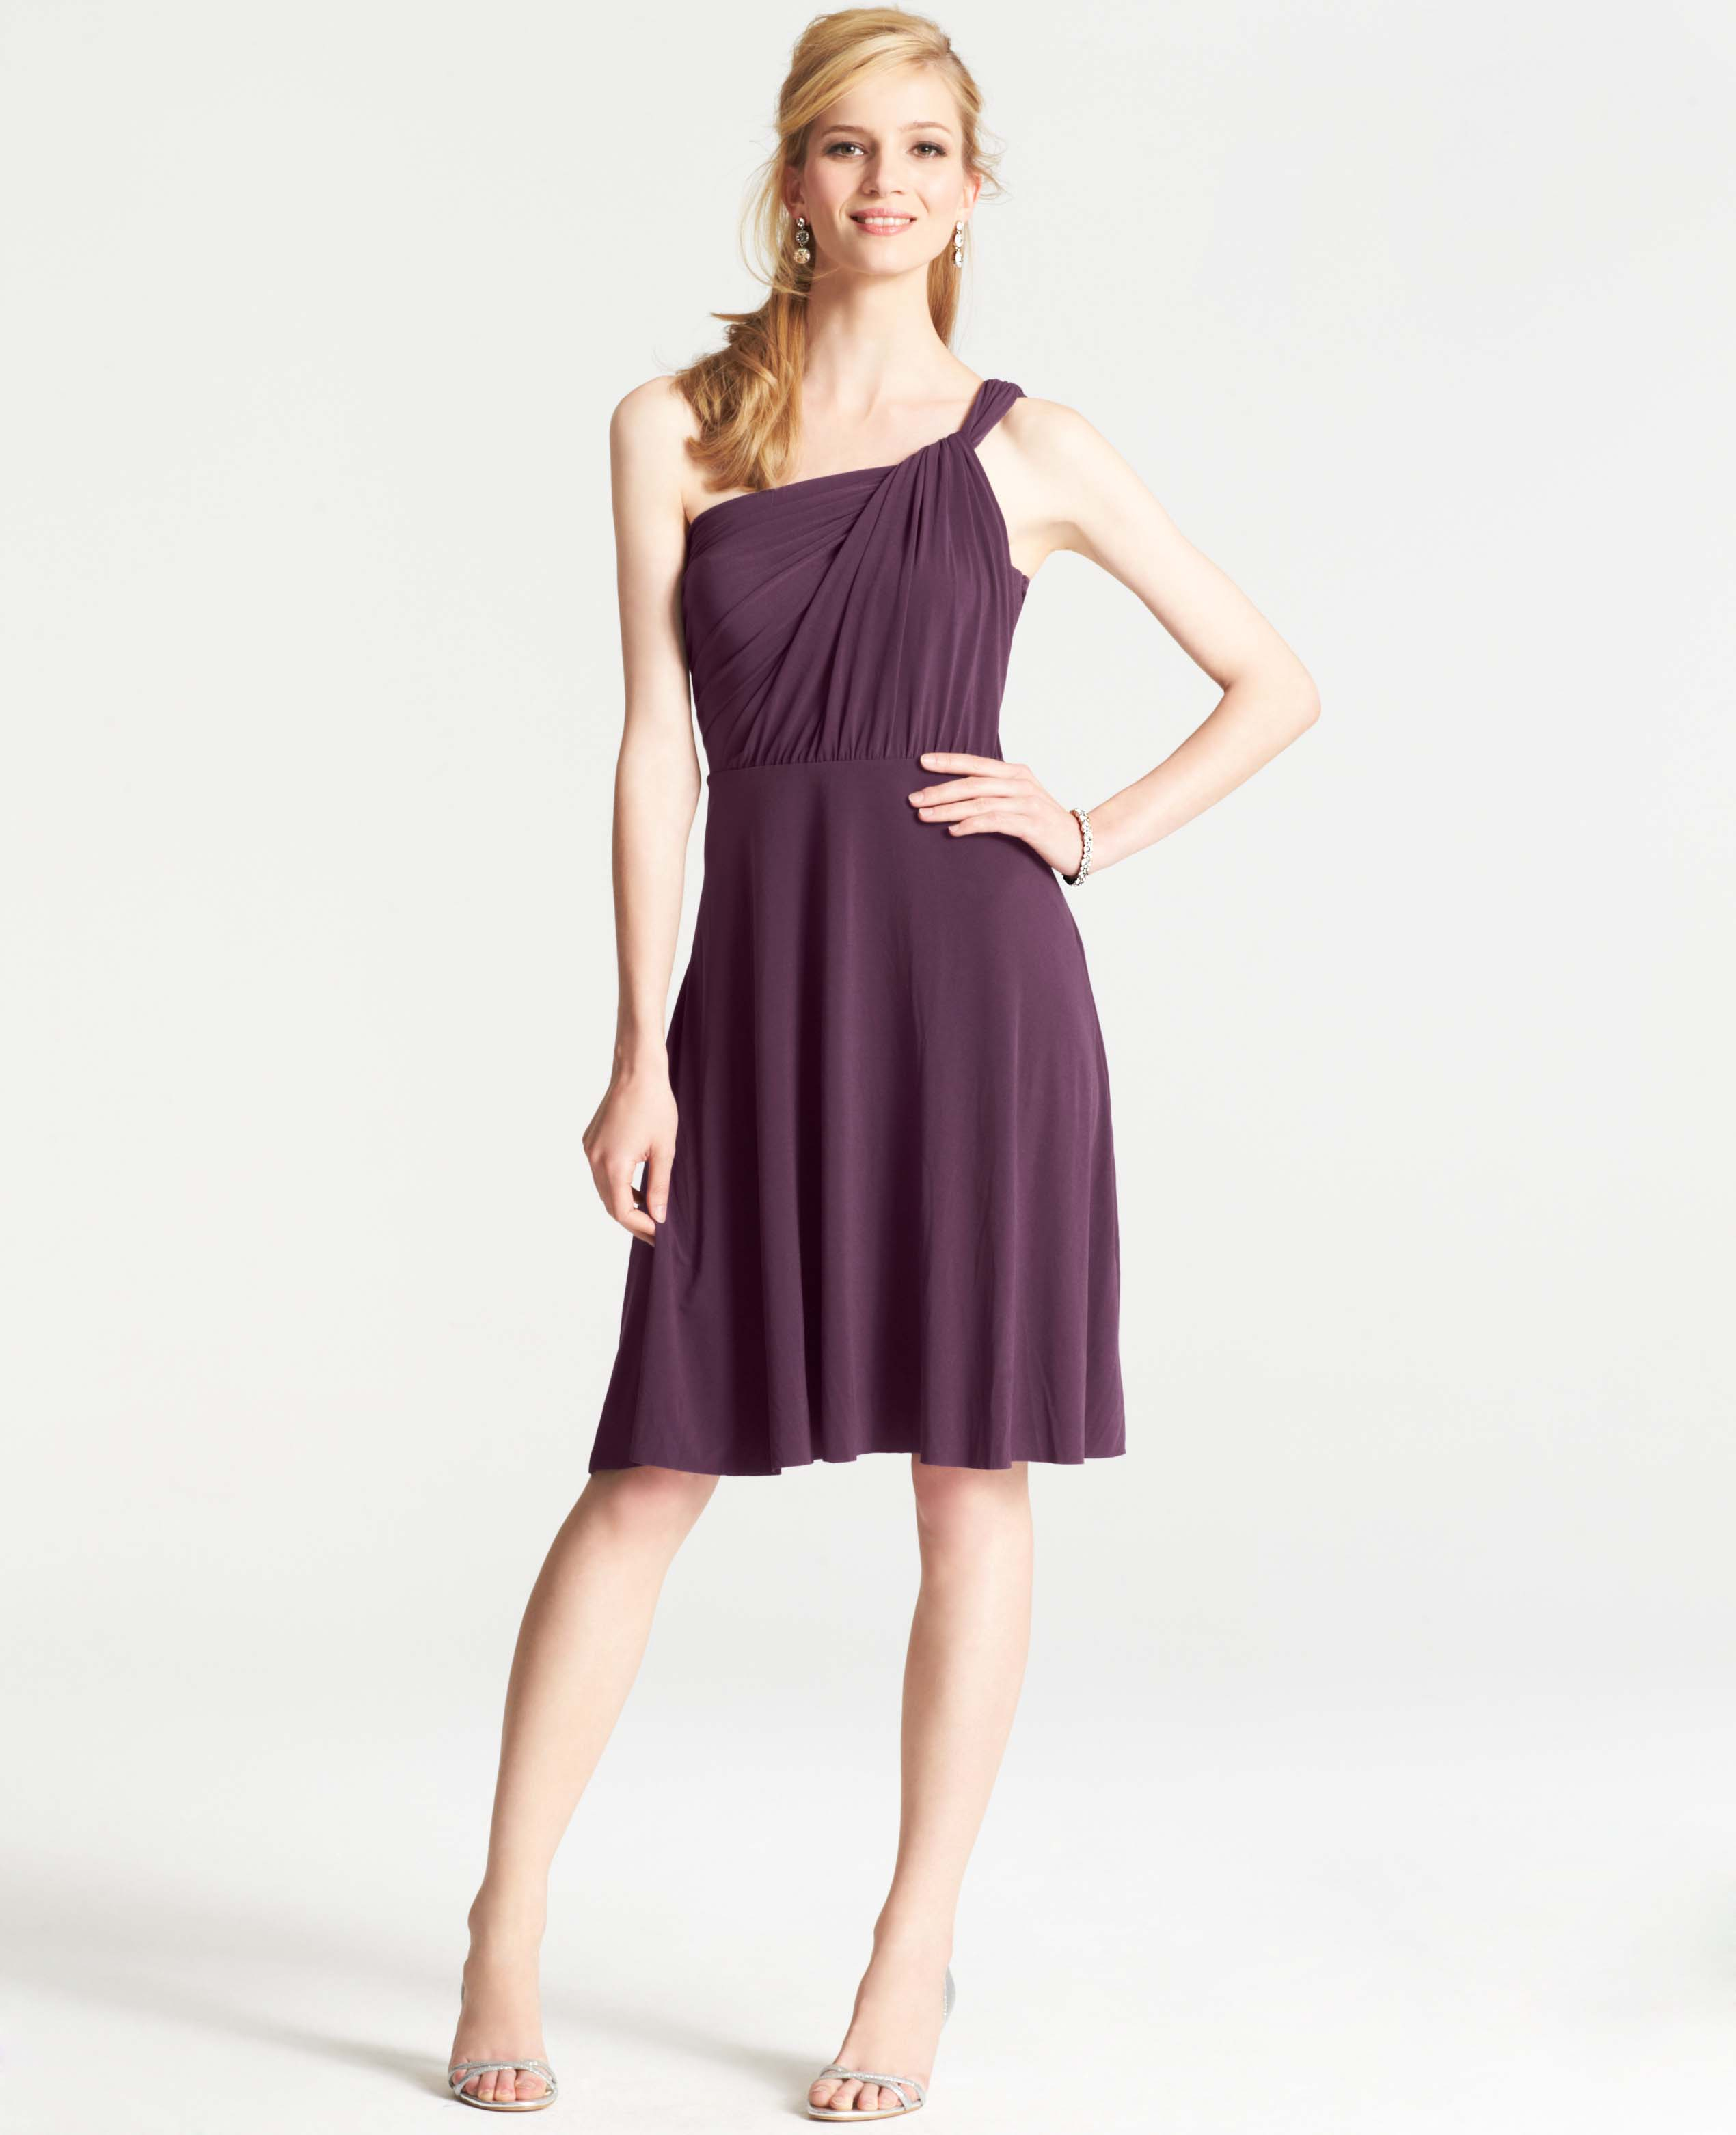 Ann taylor jersey one shoulder bridesmaid dress in purple for Wedding dresses ann taylor